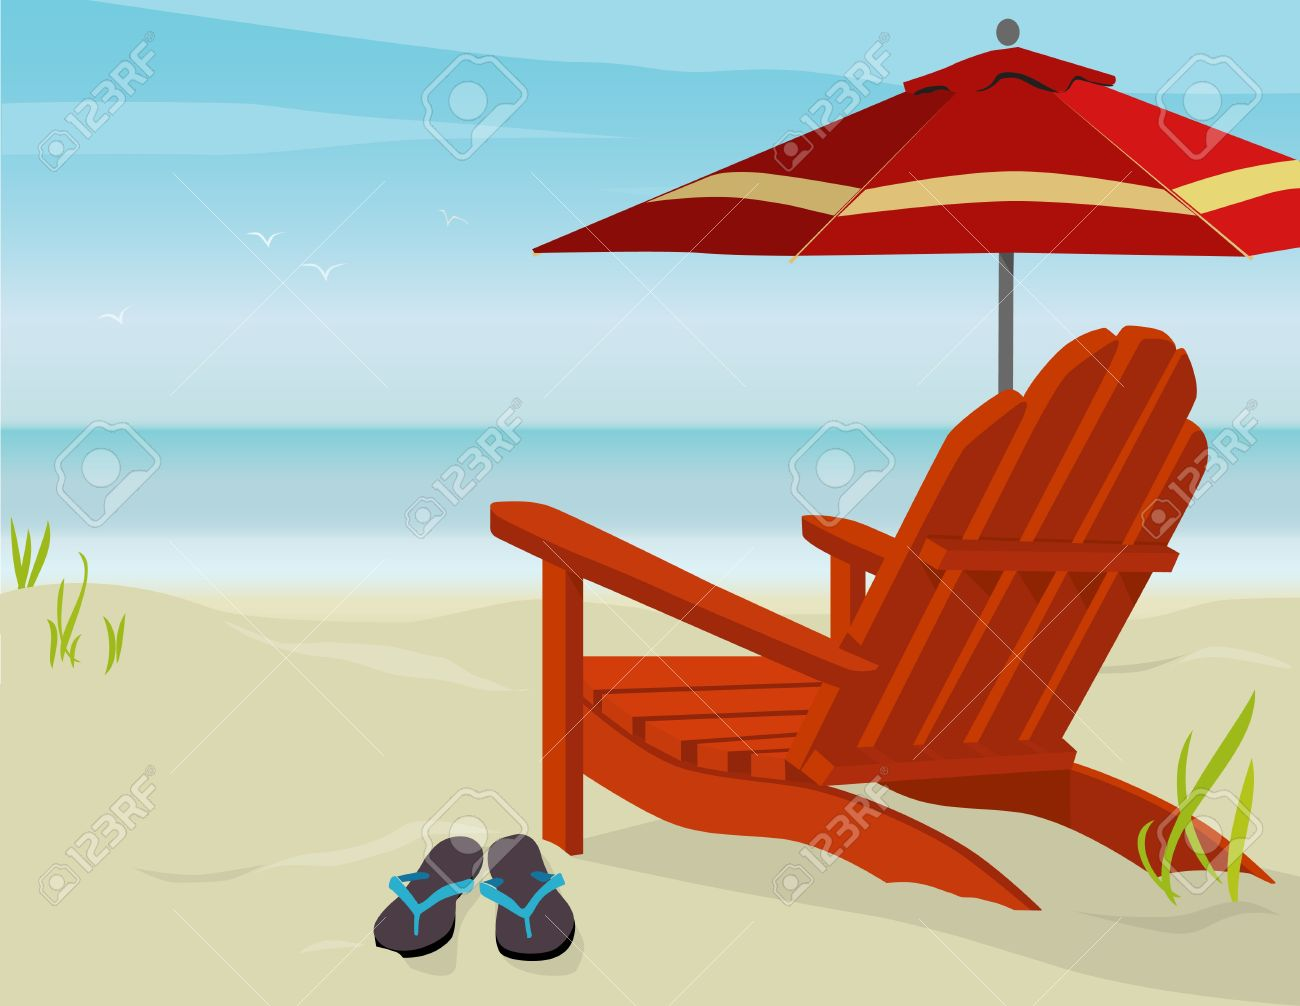 Adirondack chairs clipartsilhouette free images at clkercom -  Beach Chair Silhouette